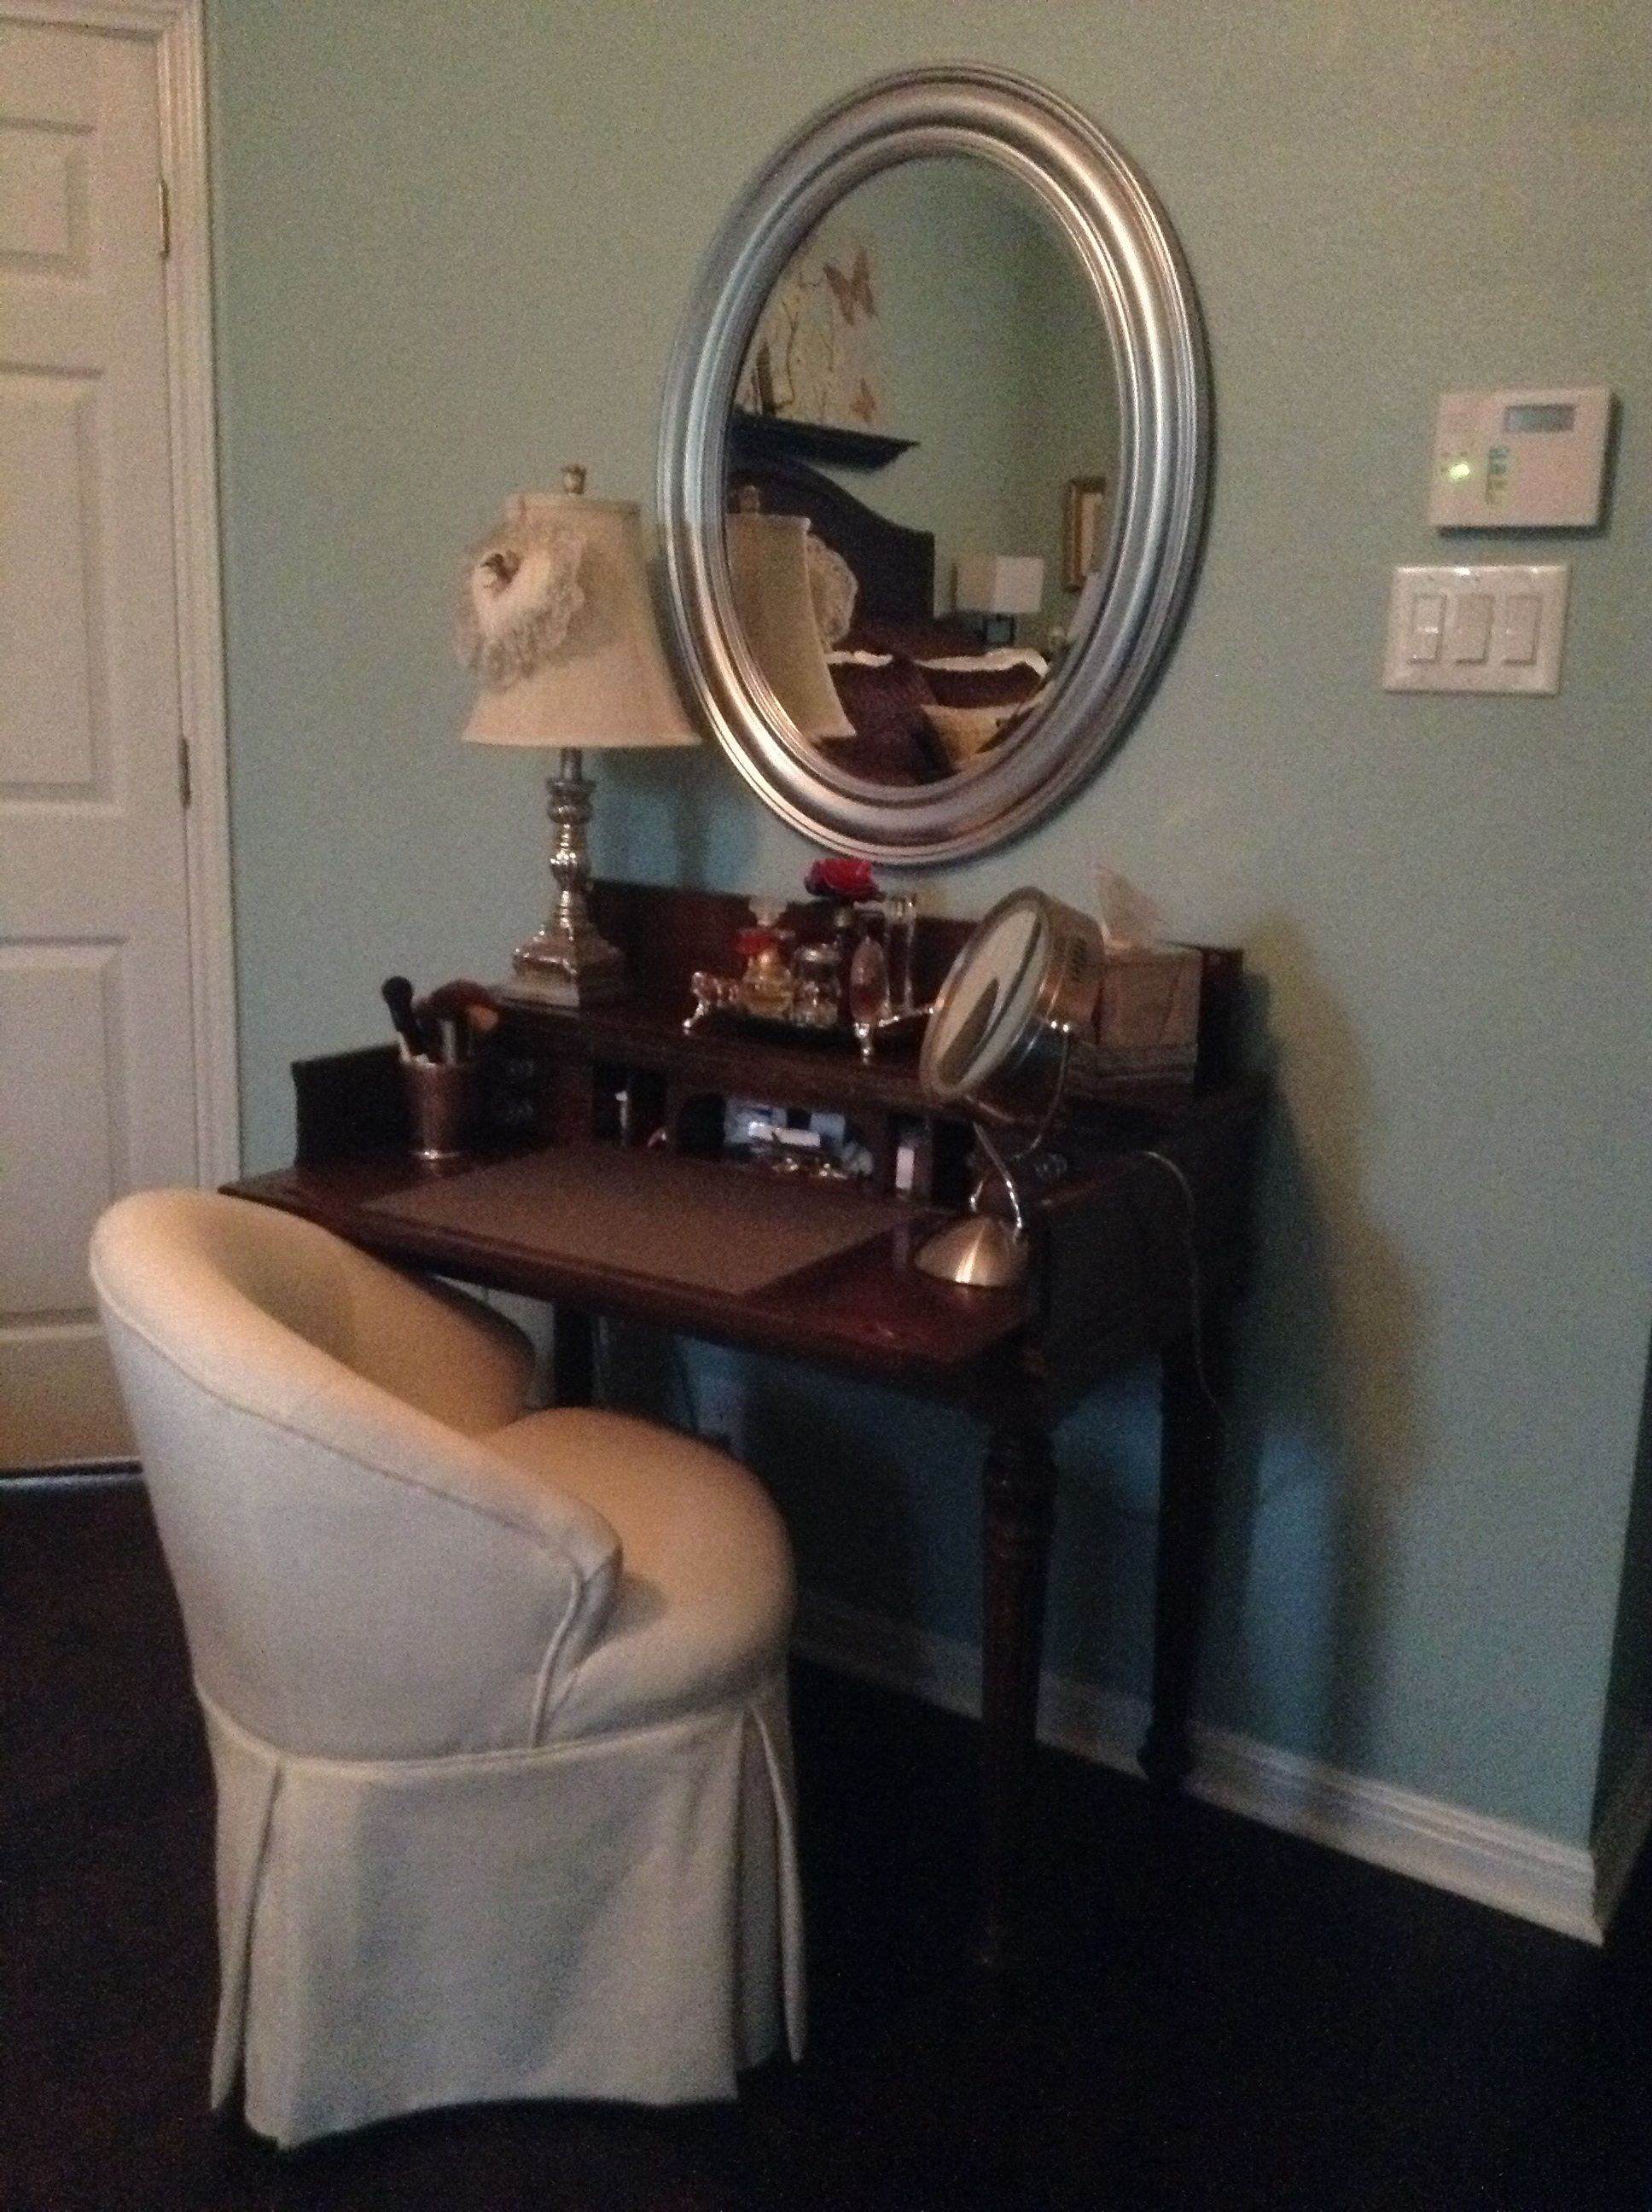 Antique desk used as vanity | Designed by me! | Pinterest ...